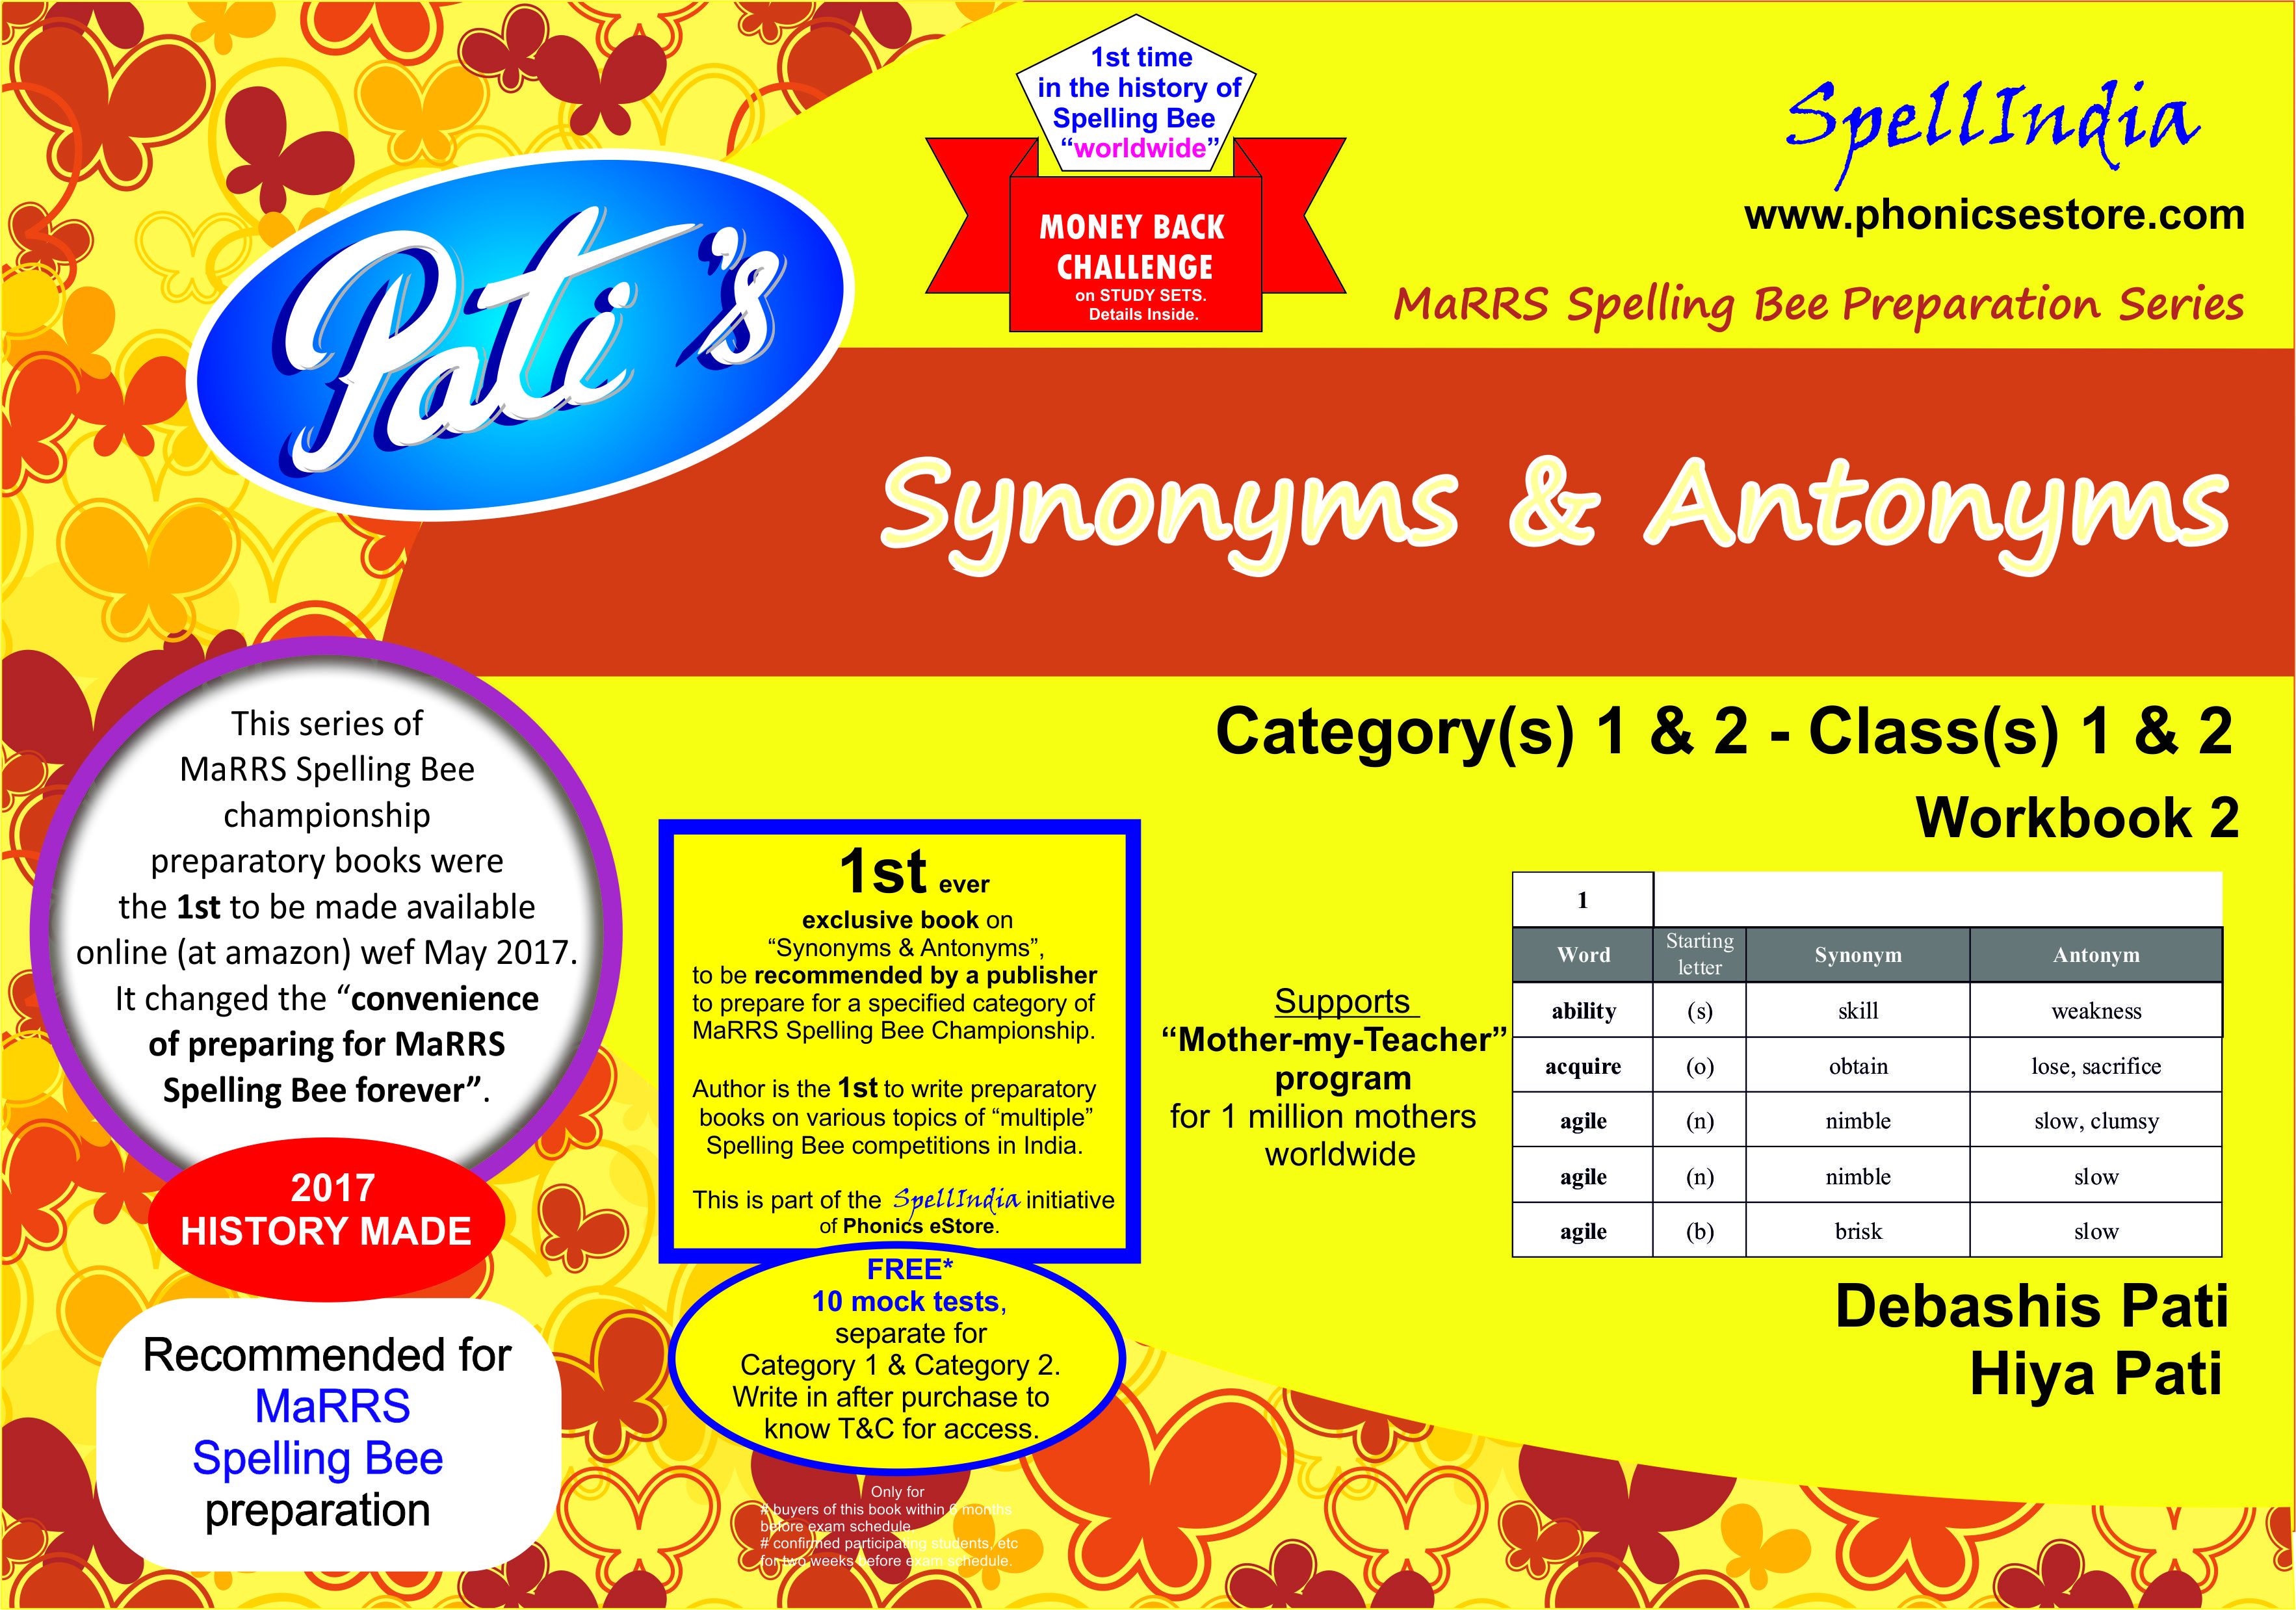 synonyms antonyms marrs spellbee book